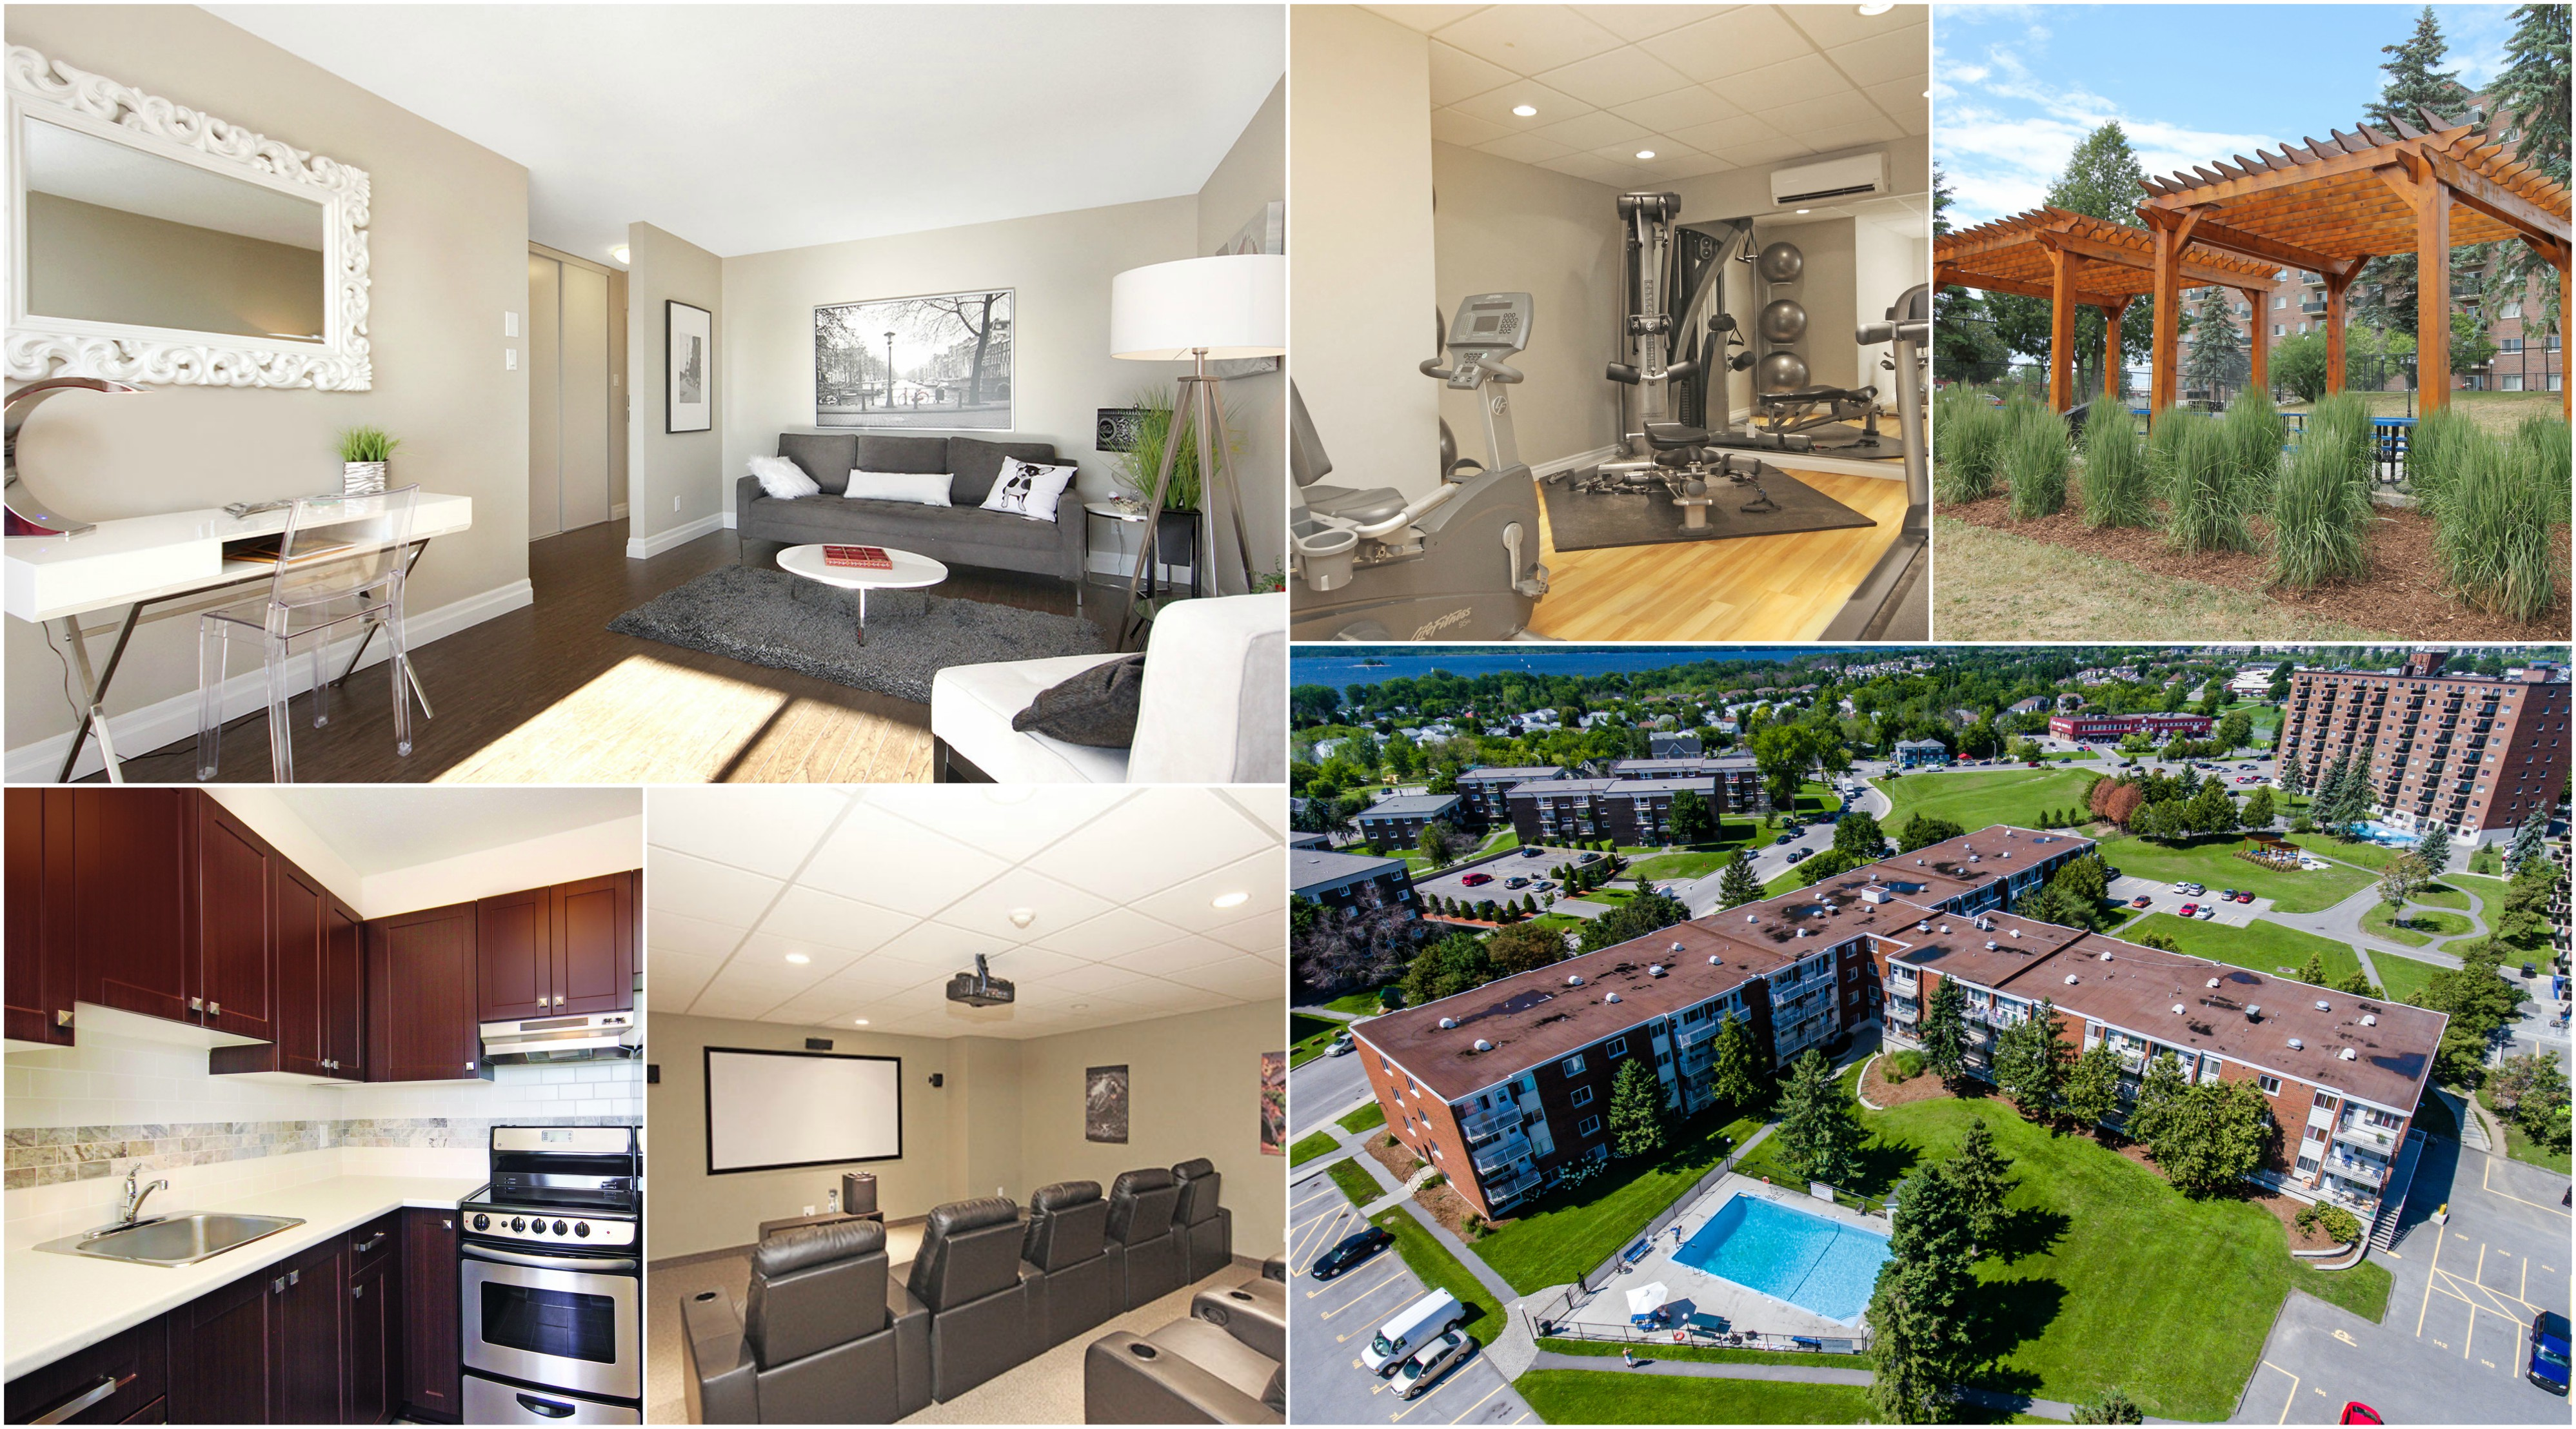 riviera apartments_clv group_apartments in aylmer quebec